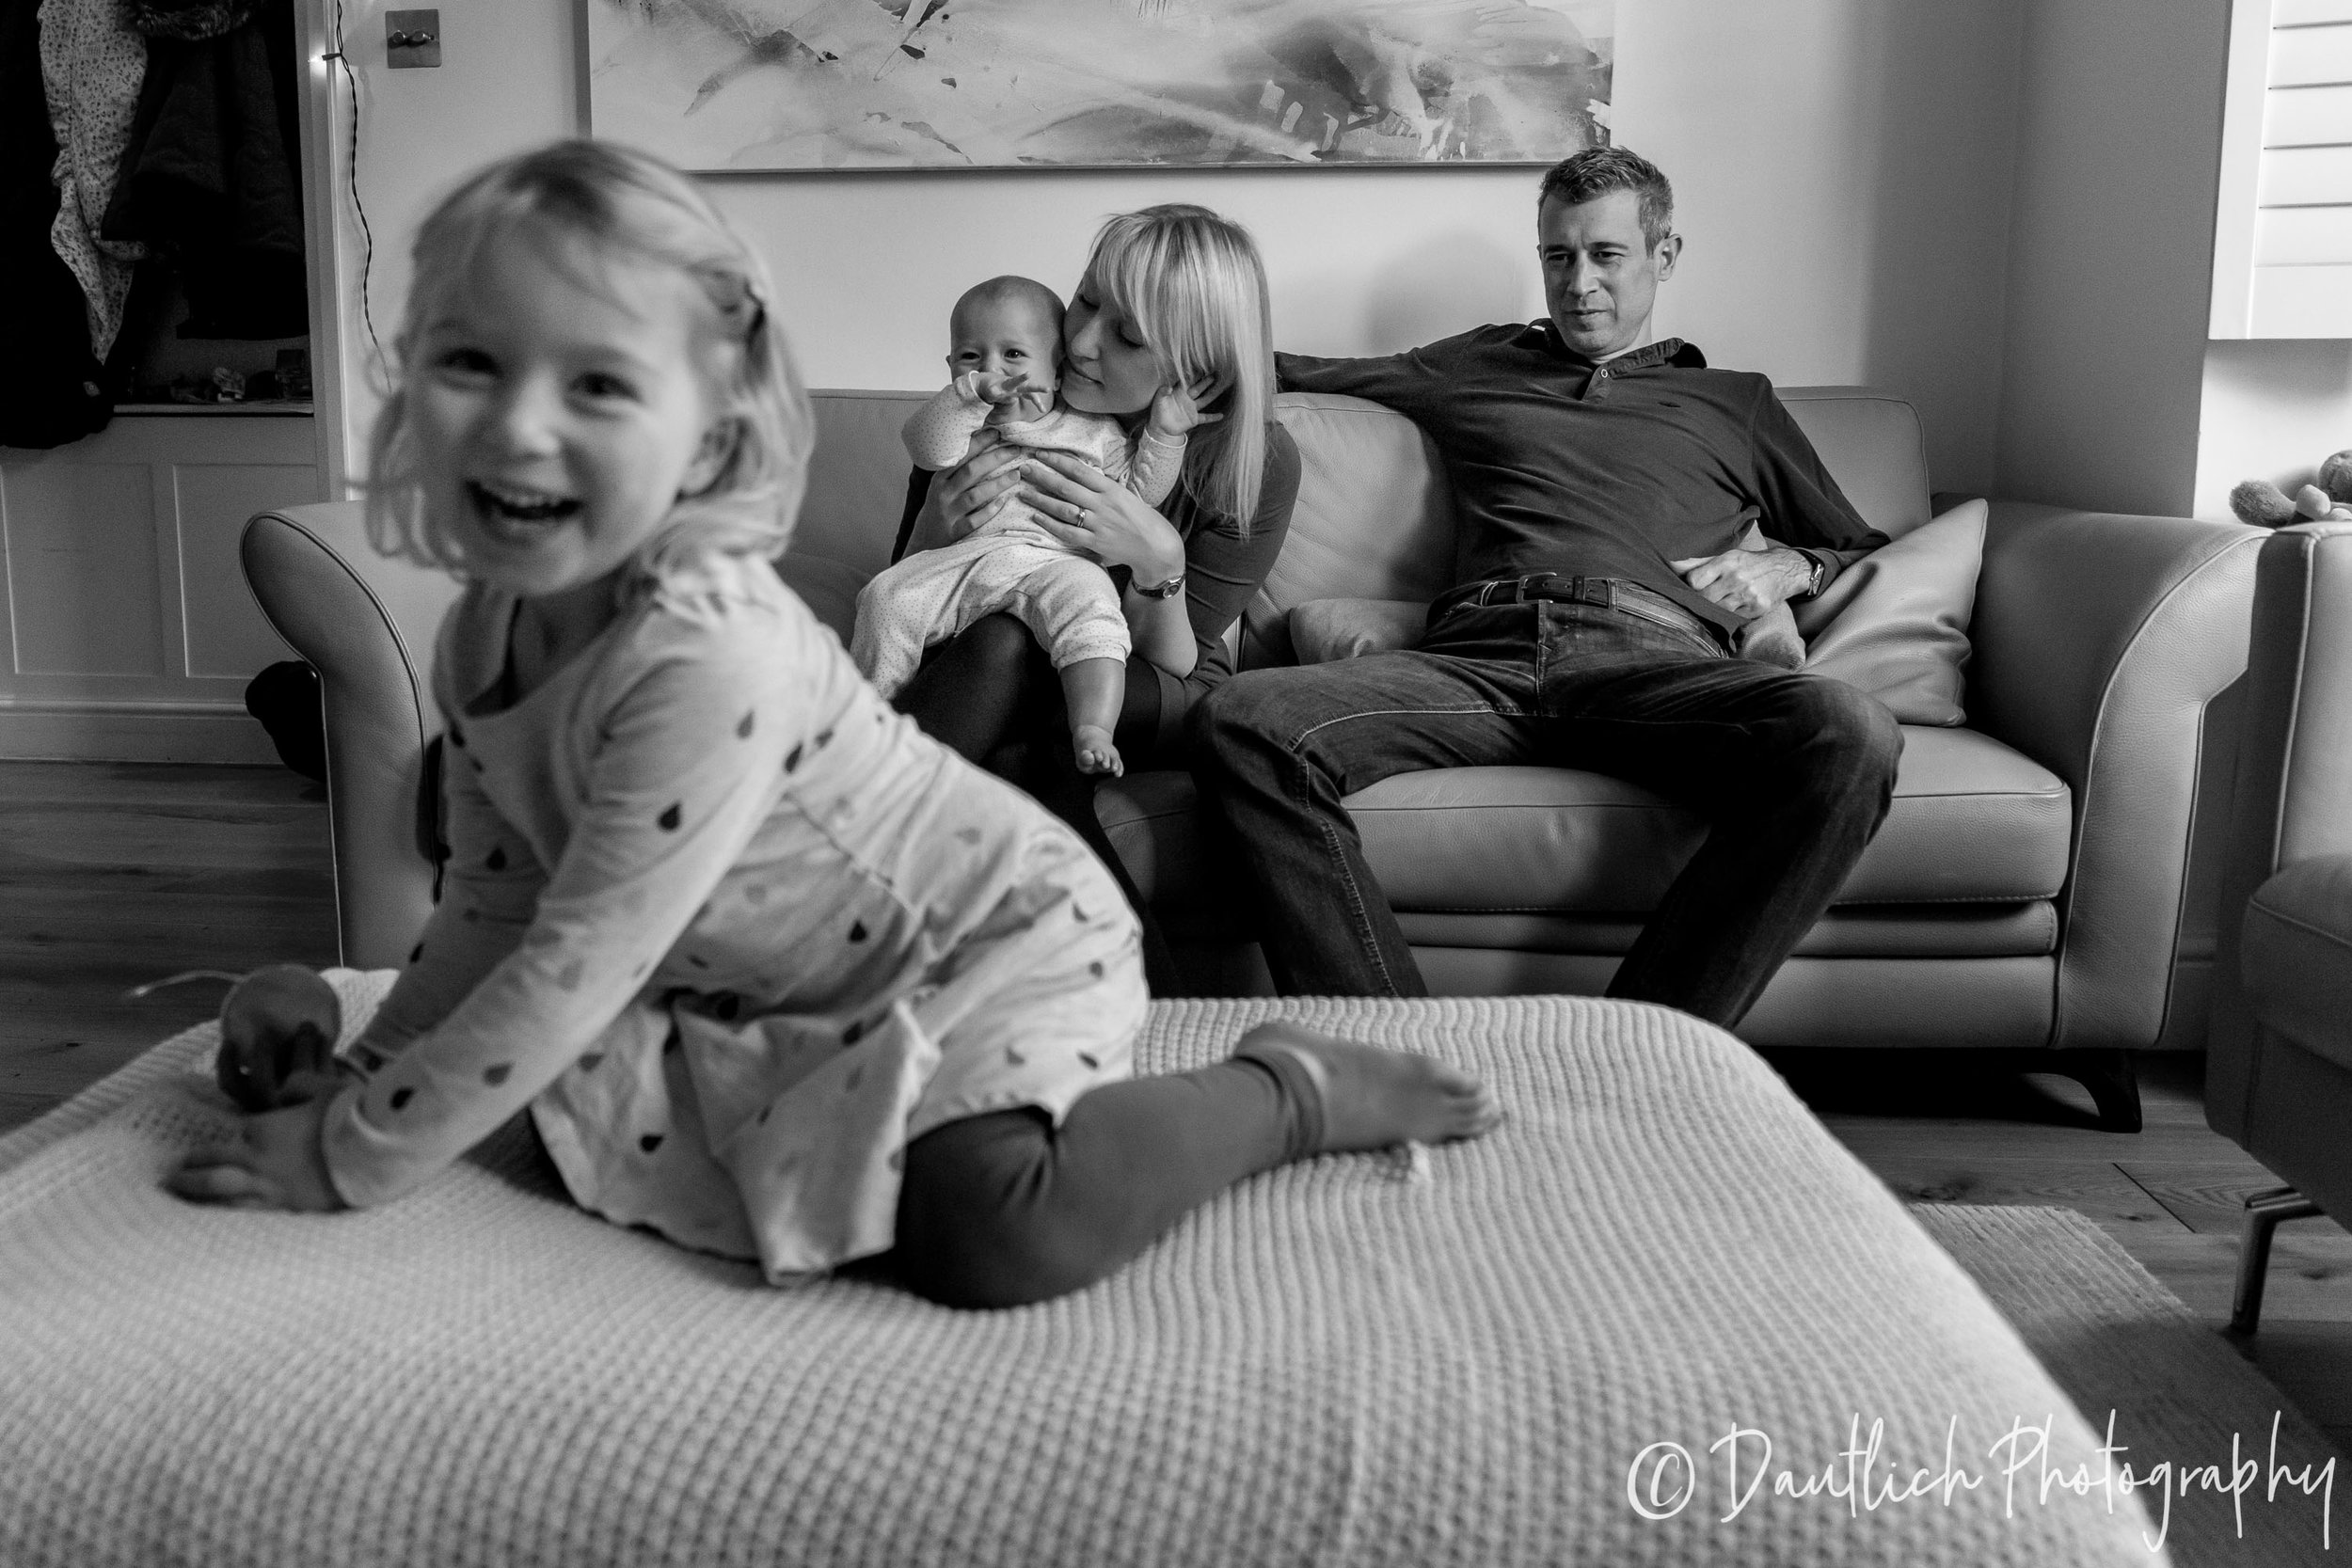 The apostolov family on the sofa with 3 year old Lila jumping on the footstool.